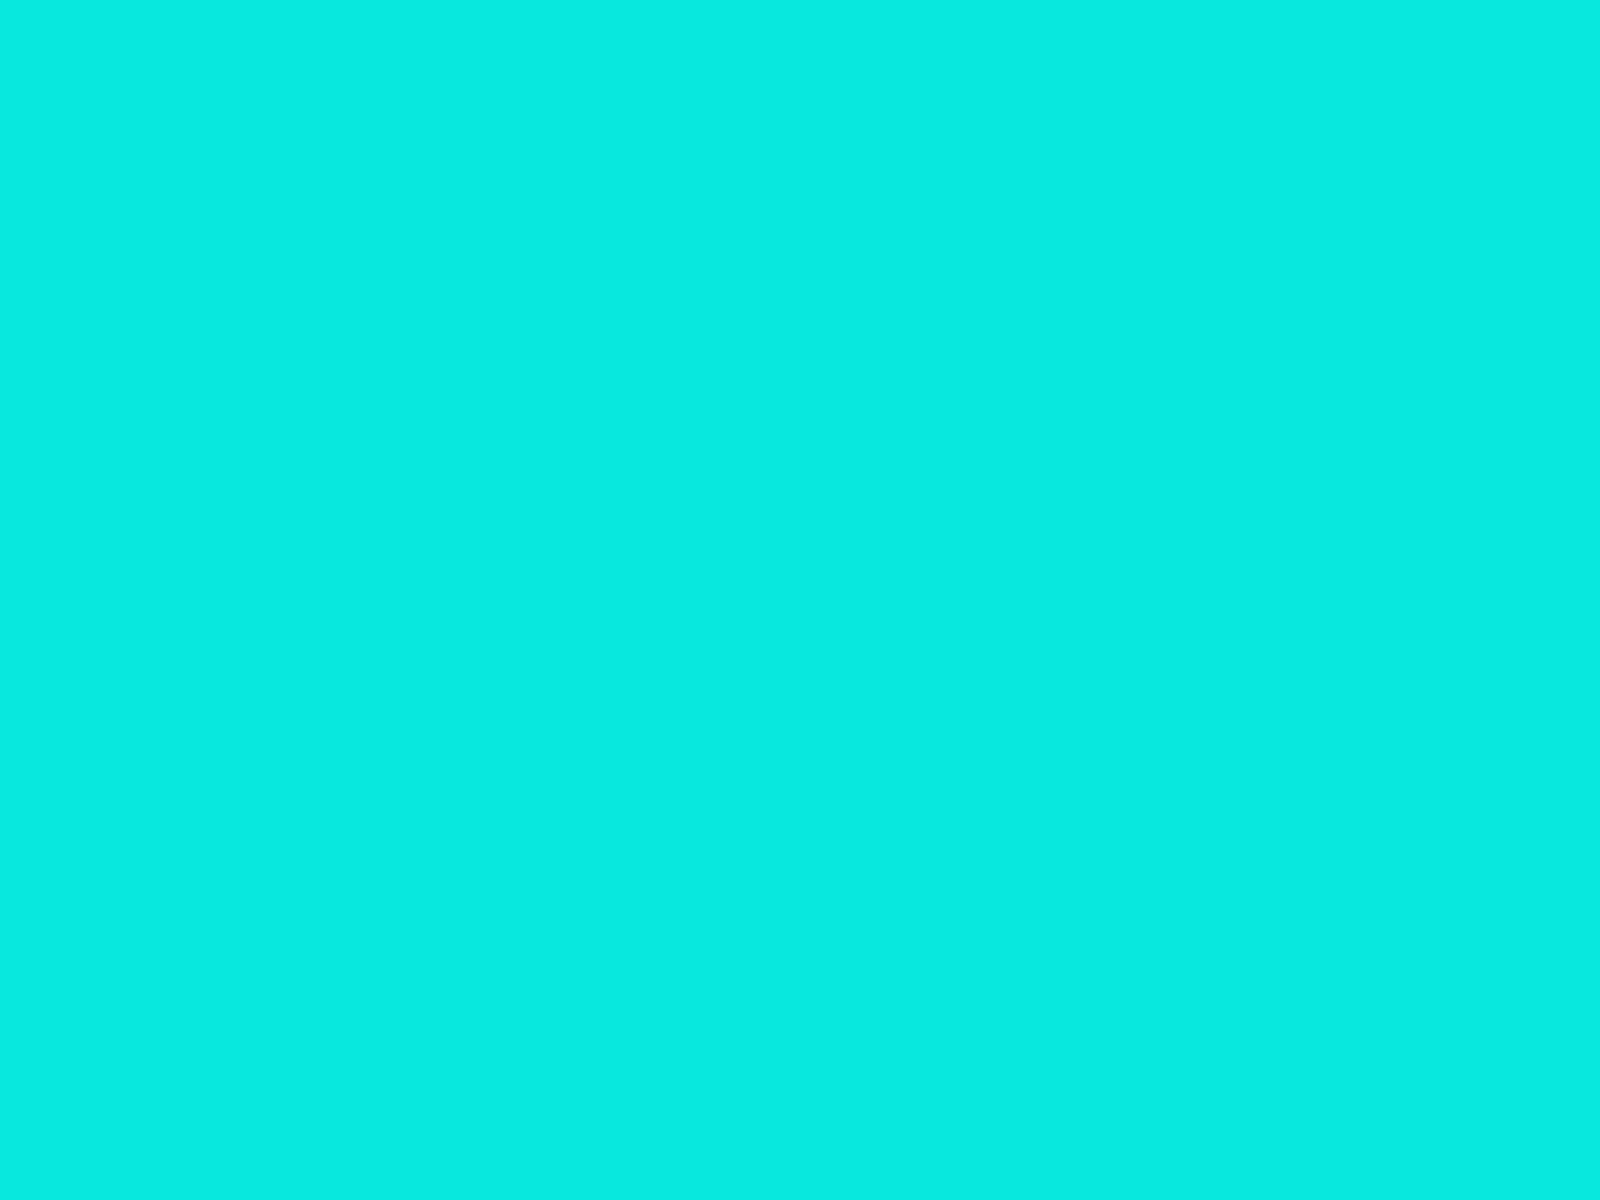 1600x1200 Bright Turquoise Solid Color Background